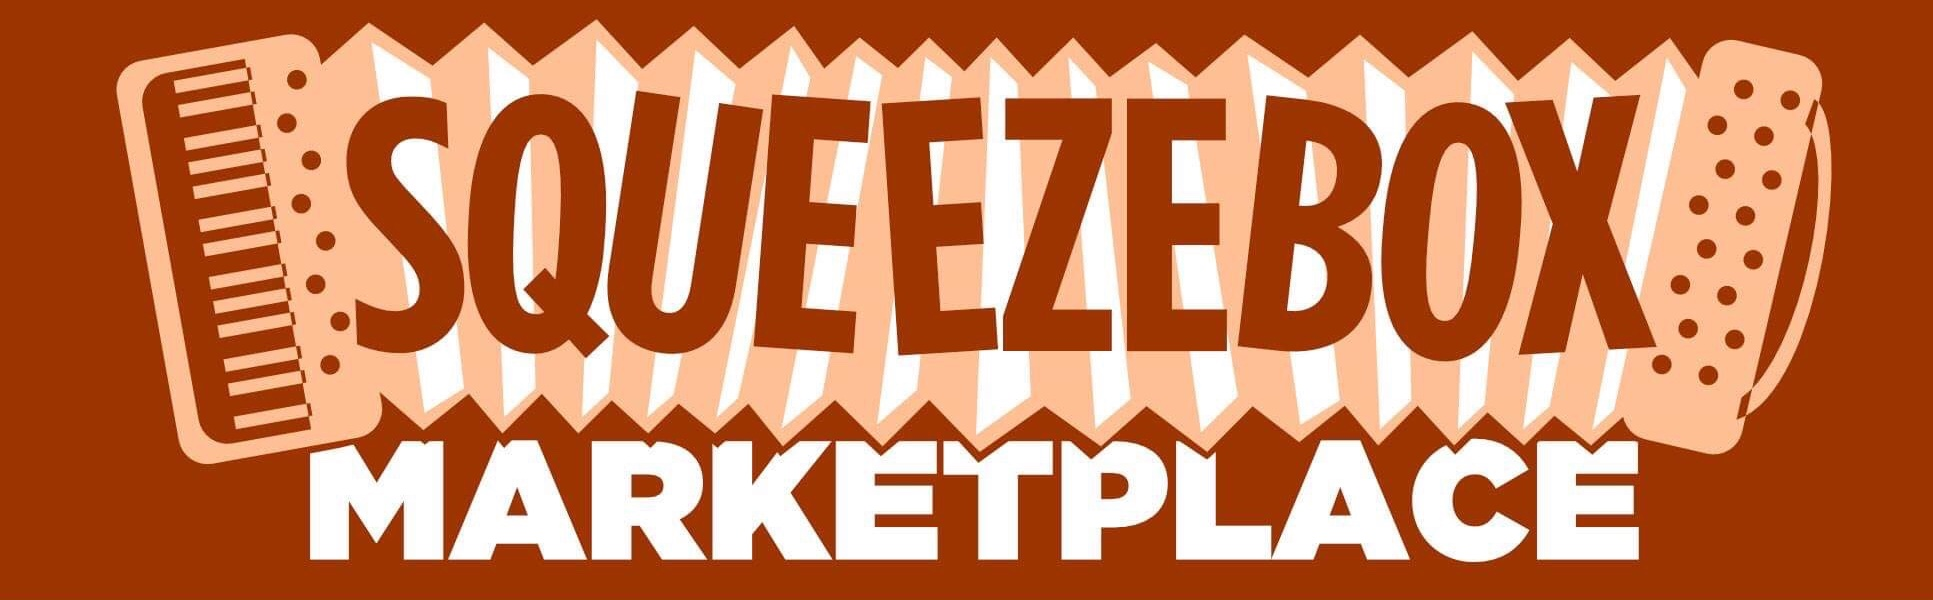 Squeezebox Marketplace